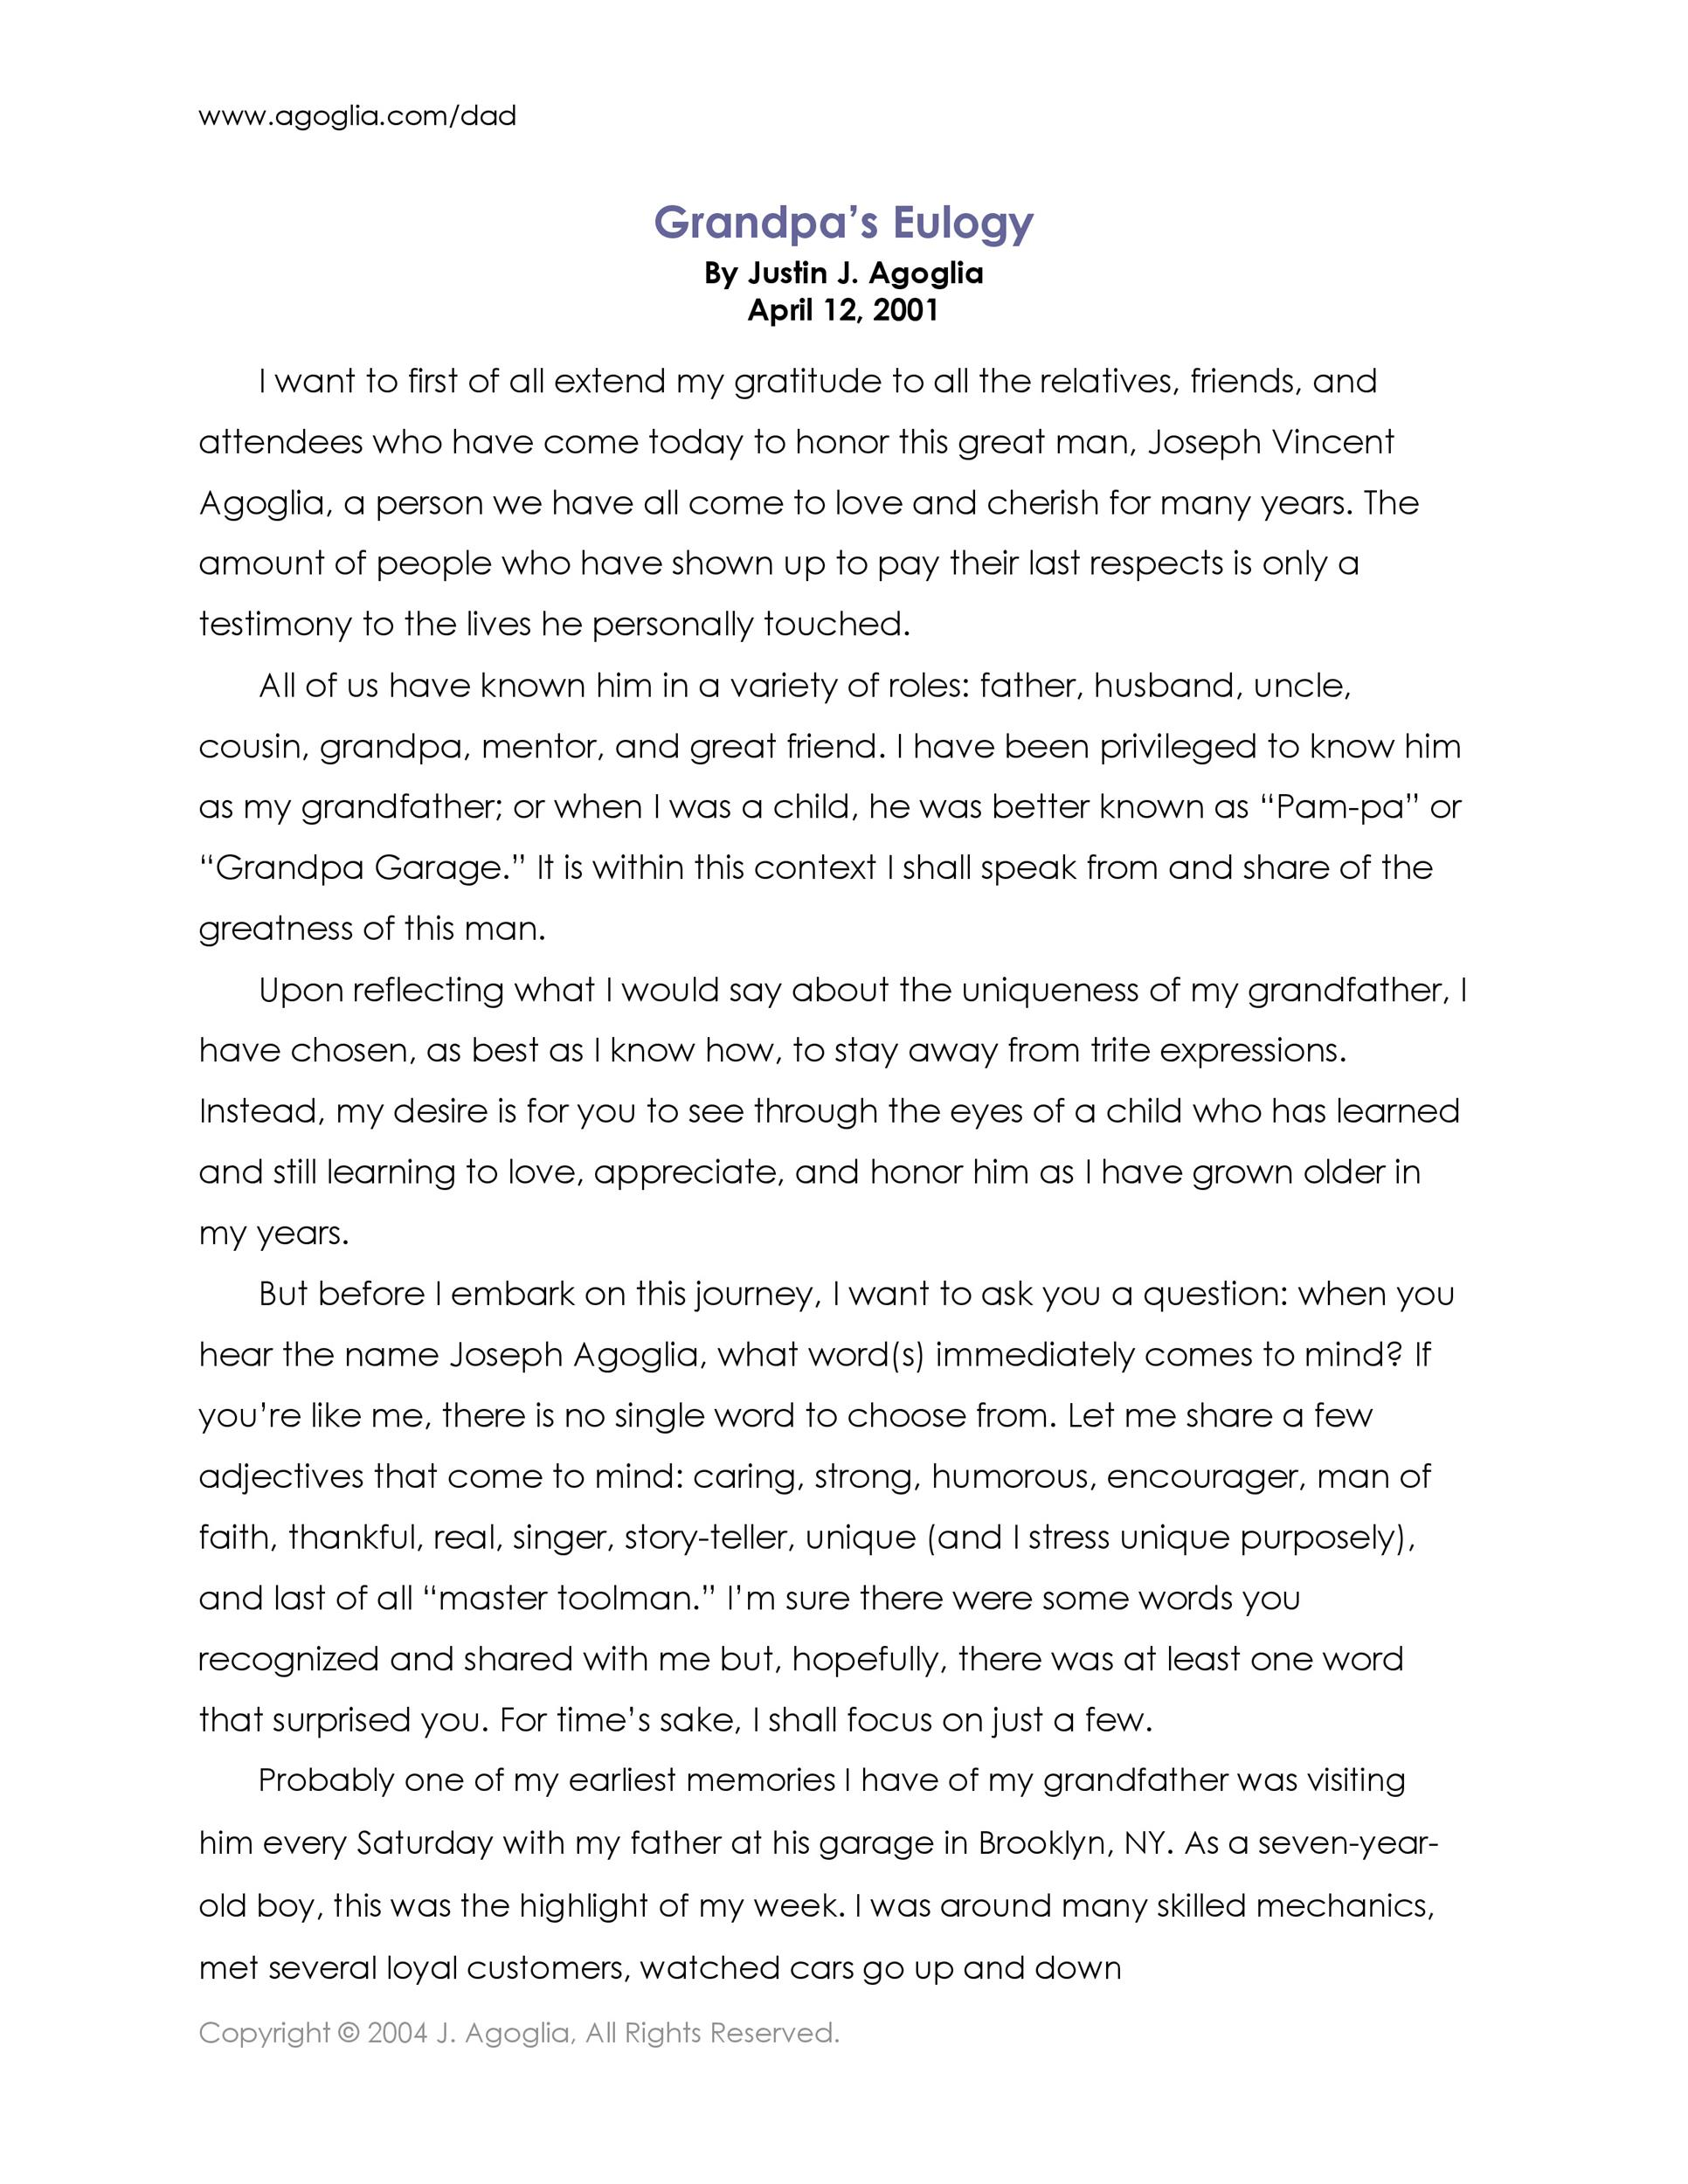 Free eulogy template 48